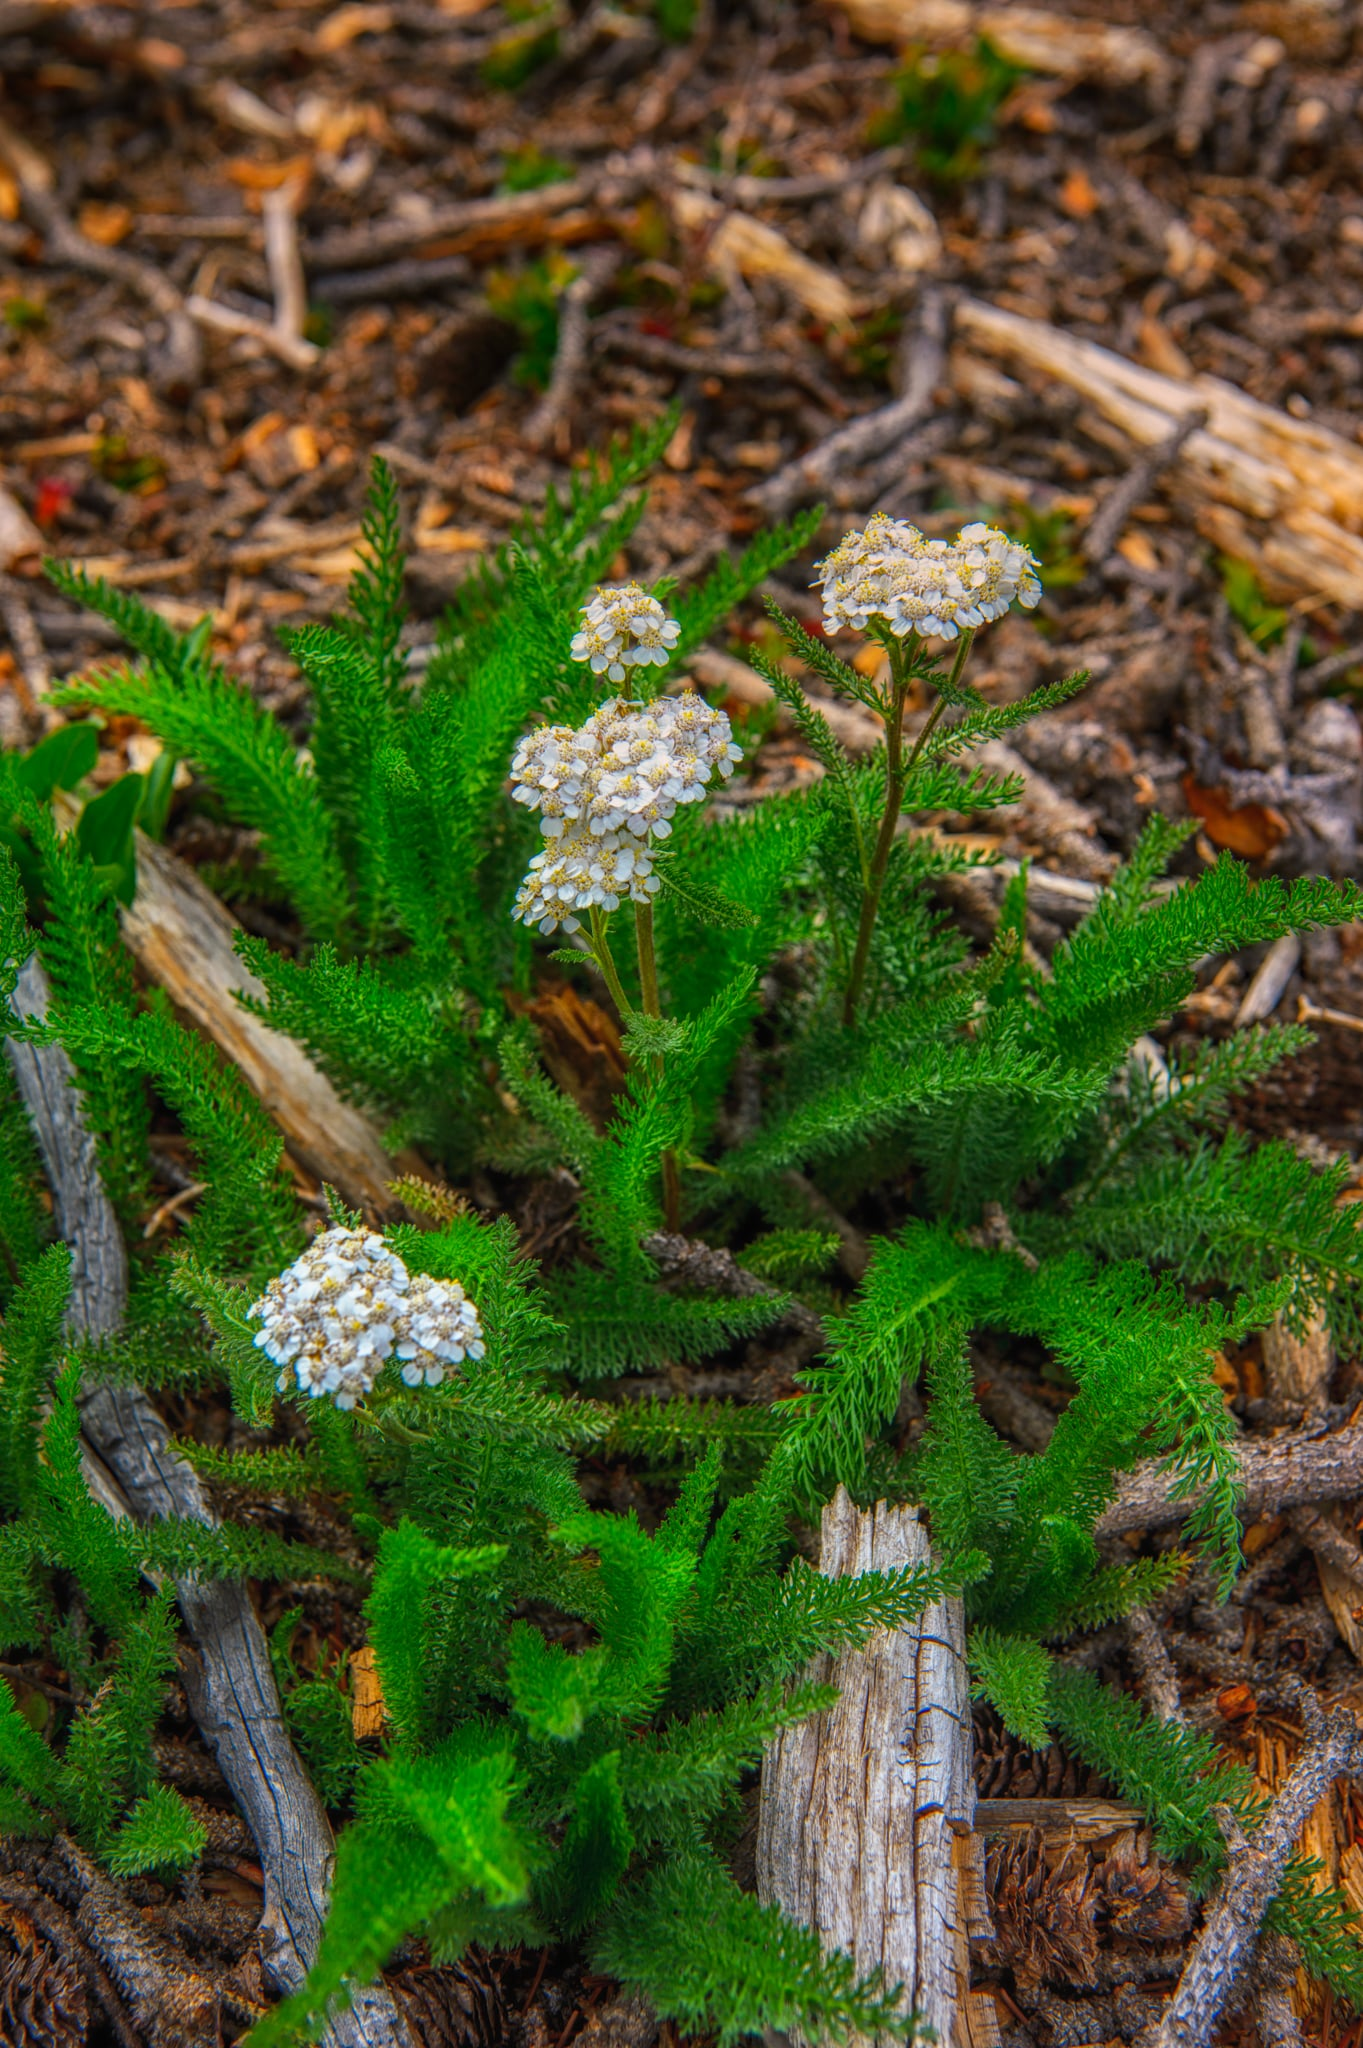 This Yarrow is growing along CO 149 near Slumgullion Pass. Due to the Spruce Bark Beetle infestation, wide swaths of forest on either side of the road have been cleared, creating an ideal environment for wildflowers.